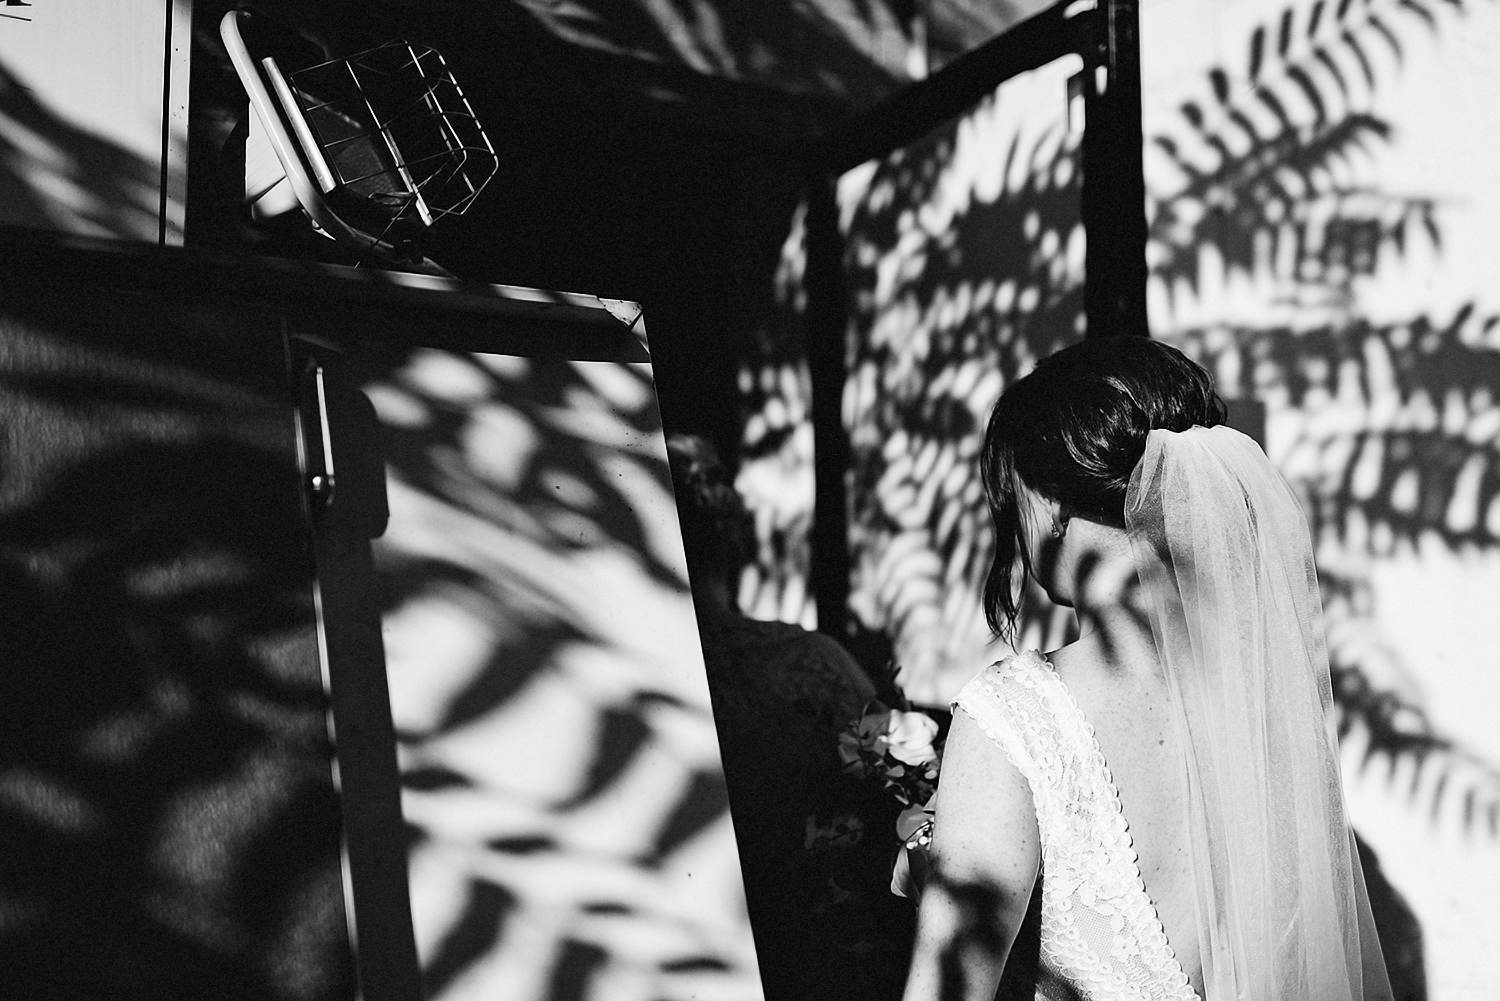 Best-Wedding-photographers-Toronto-NAtural-Candid-wedding-photography-Airship37-Wedding-Ceremony-Entrance-Candid-Emotional-Bride-shadow-portrait.jpg